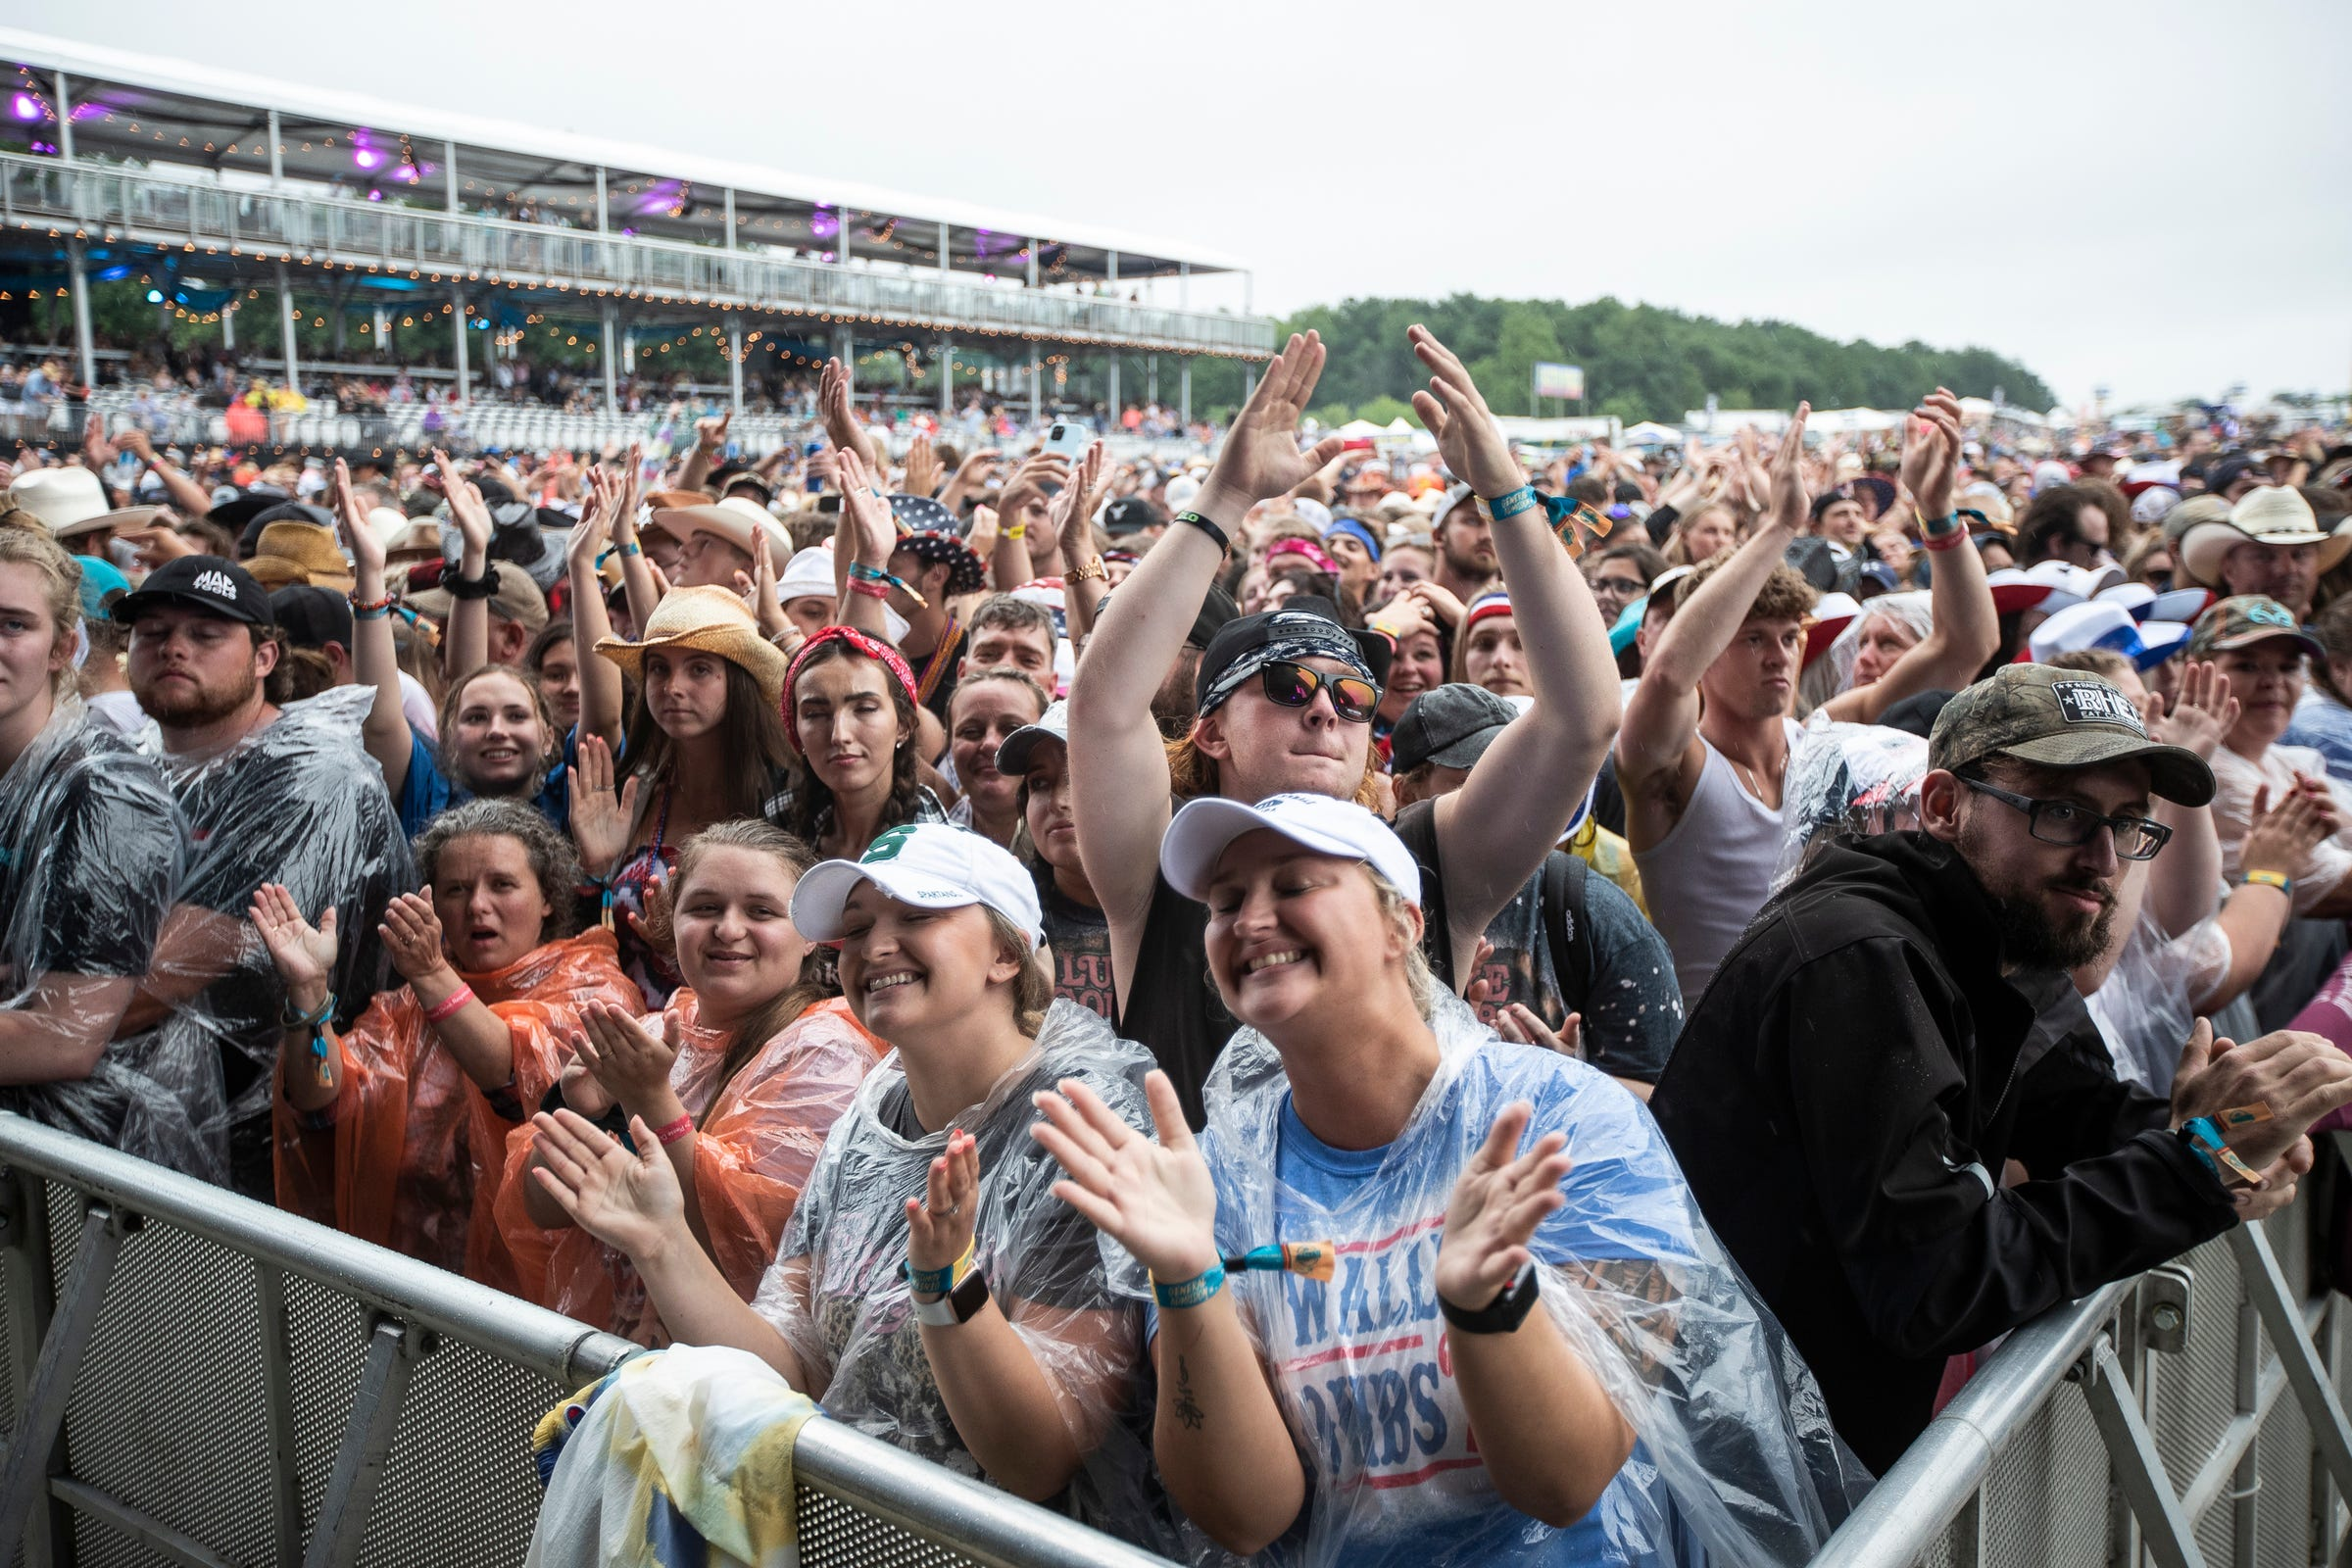 17 cases of COVID-19 identified in Faster Horses Festival attendees